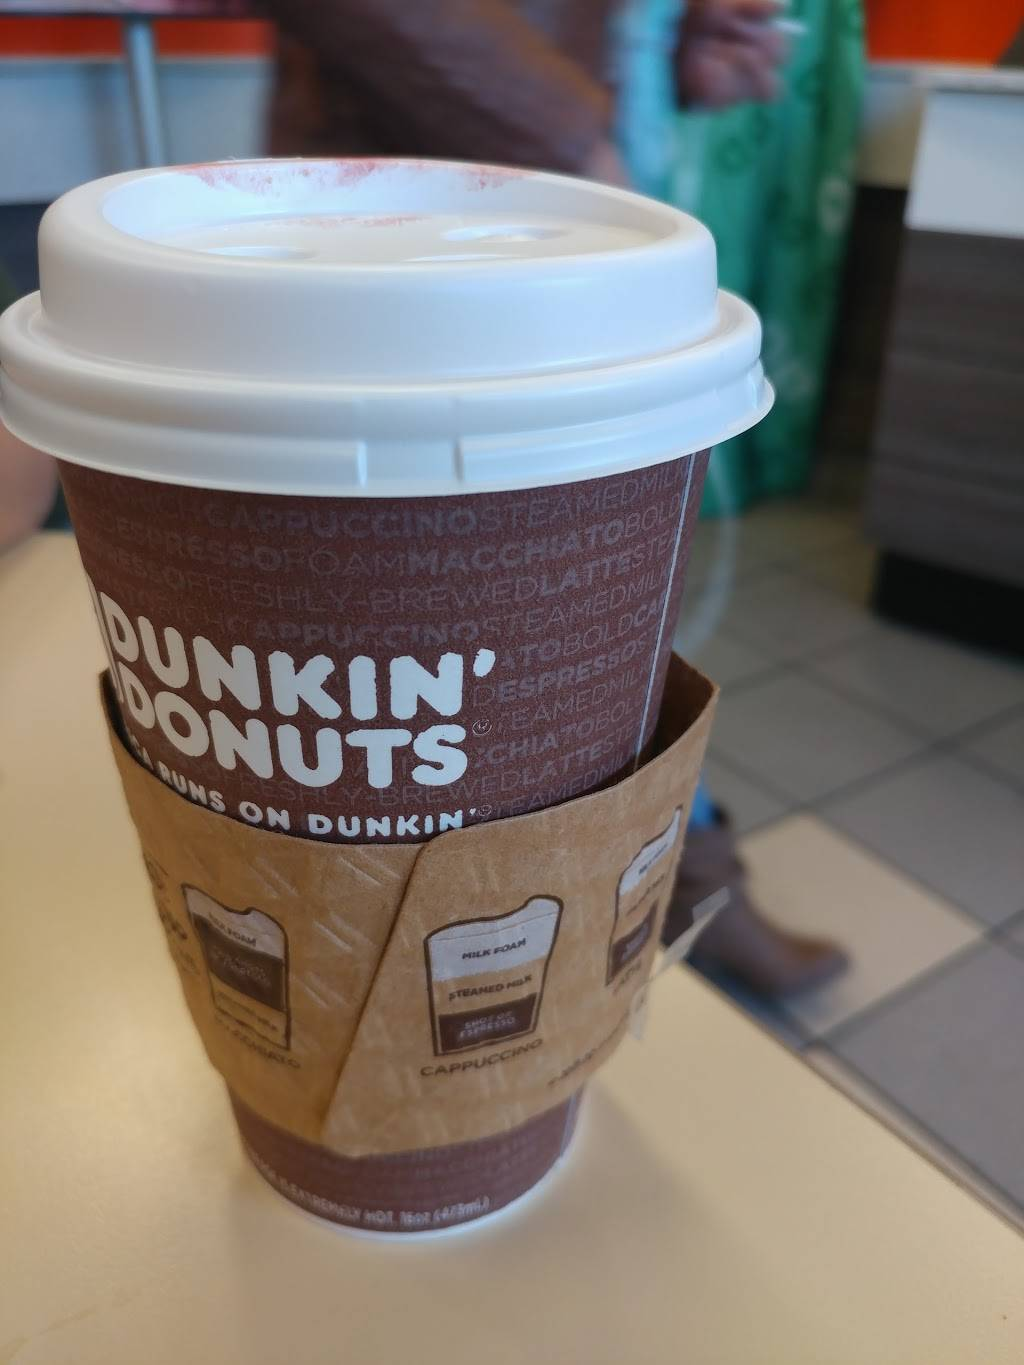 Dunkin Donuts | cafe | 2816 Palisade Ave, Weehawken, NJ 07086, USA | 2013480495 OR +1 201-348-0495